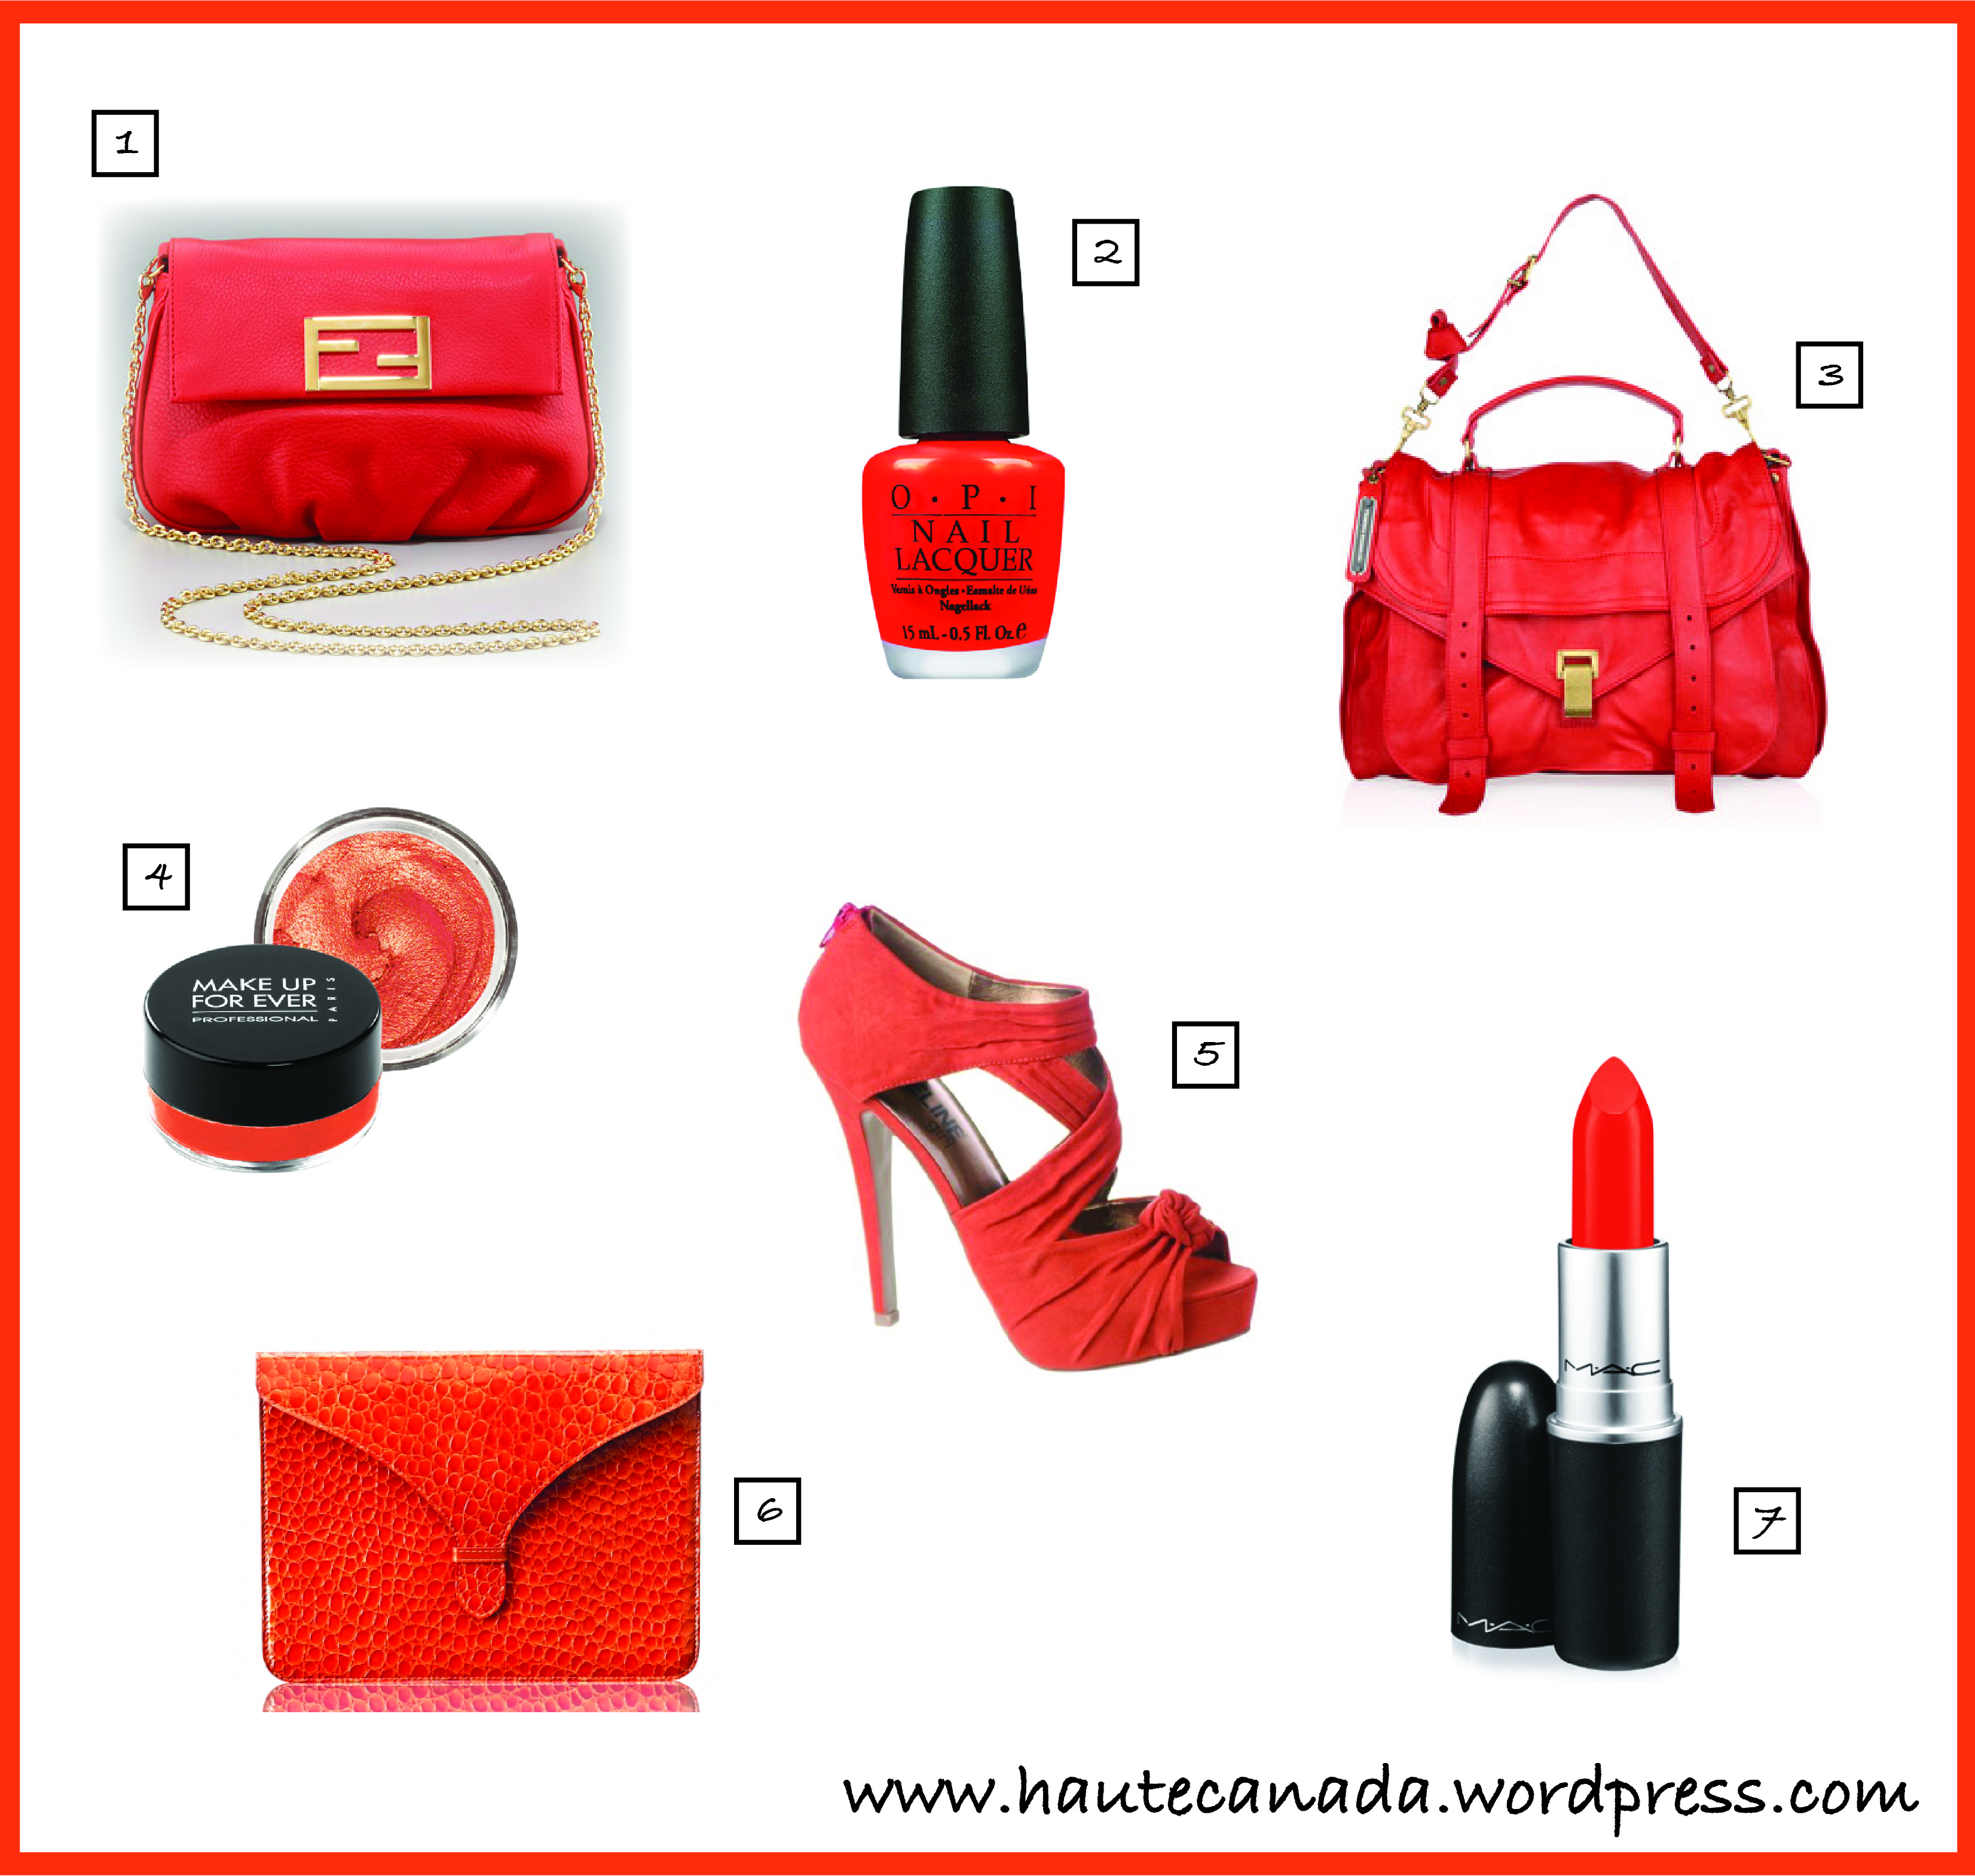 Pantone 2012 Colour Of The Year: Tangerine Tango | A Side Of Vogue